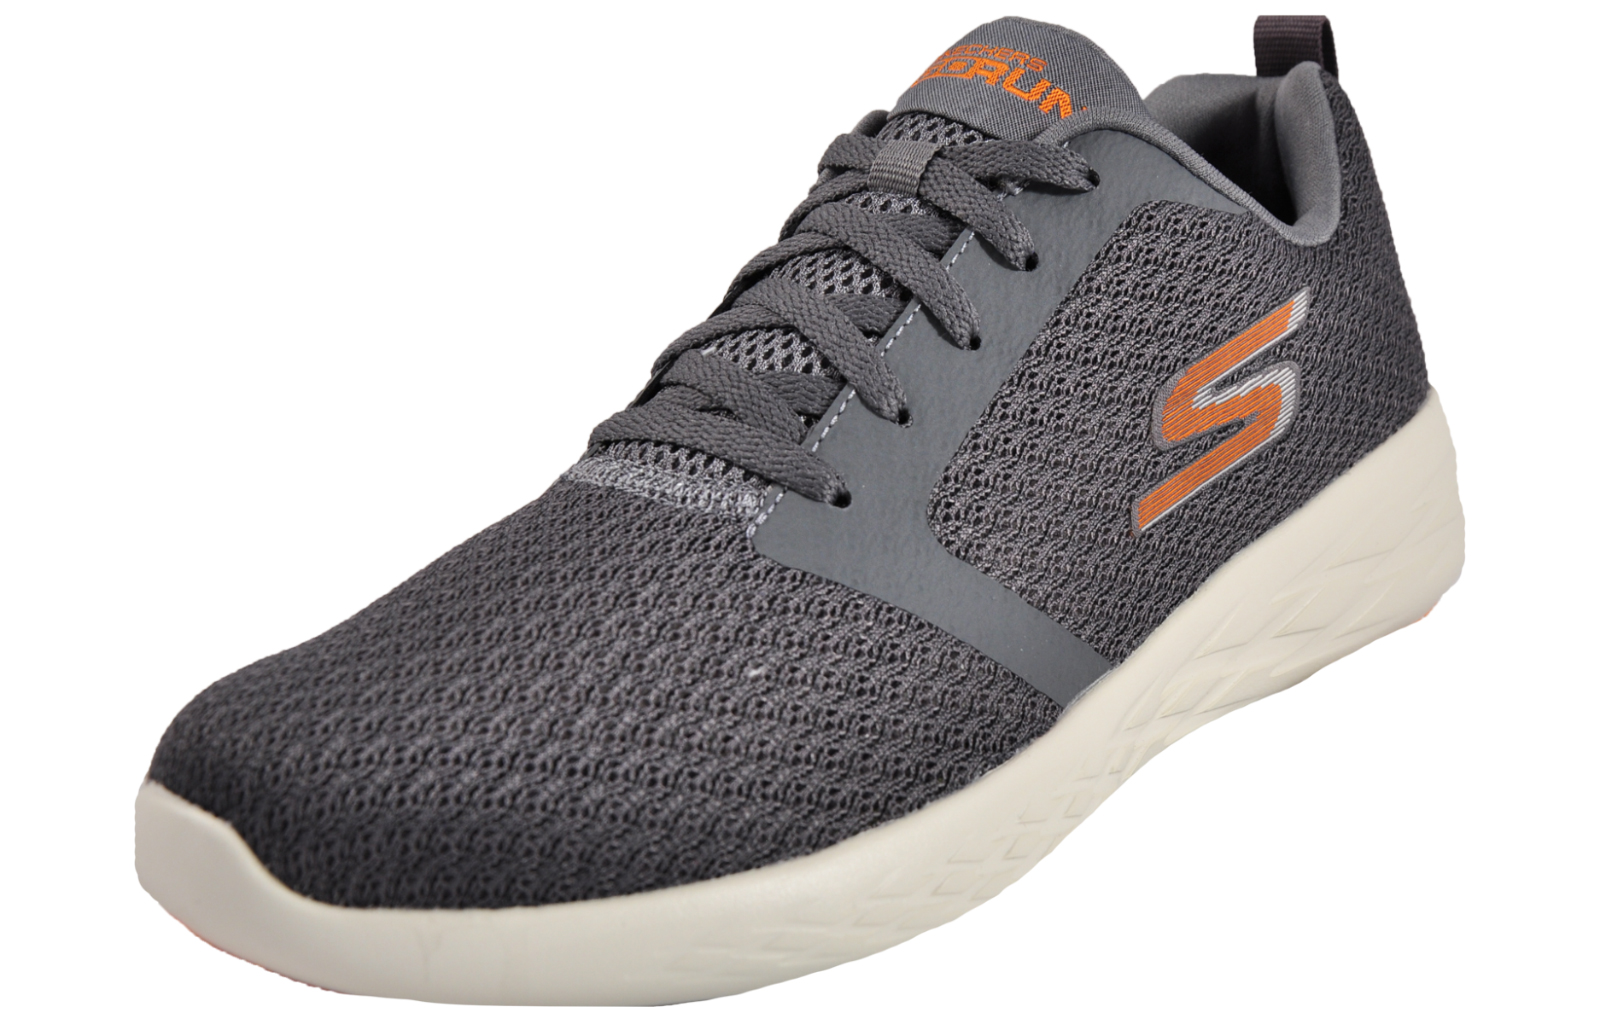 Skechers Go Run 600 Mens New 2019 - SK192930